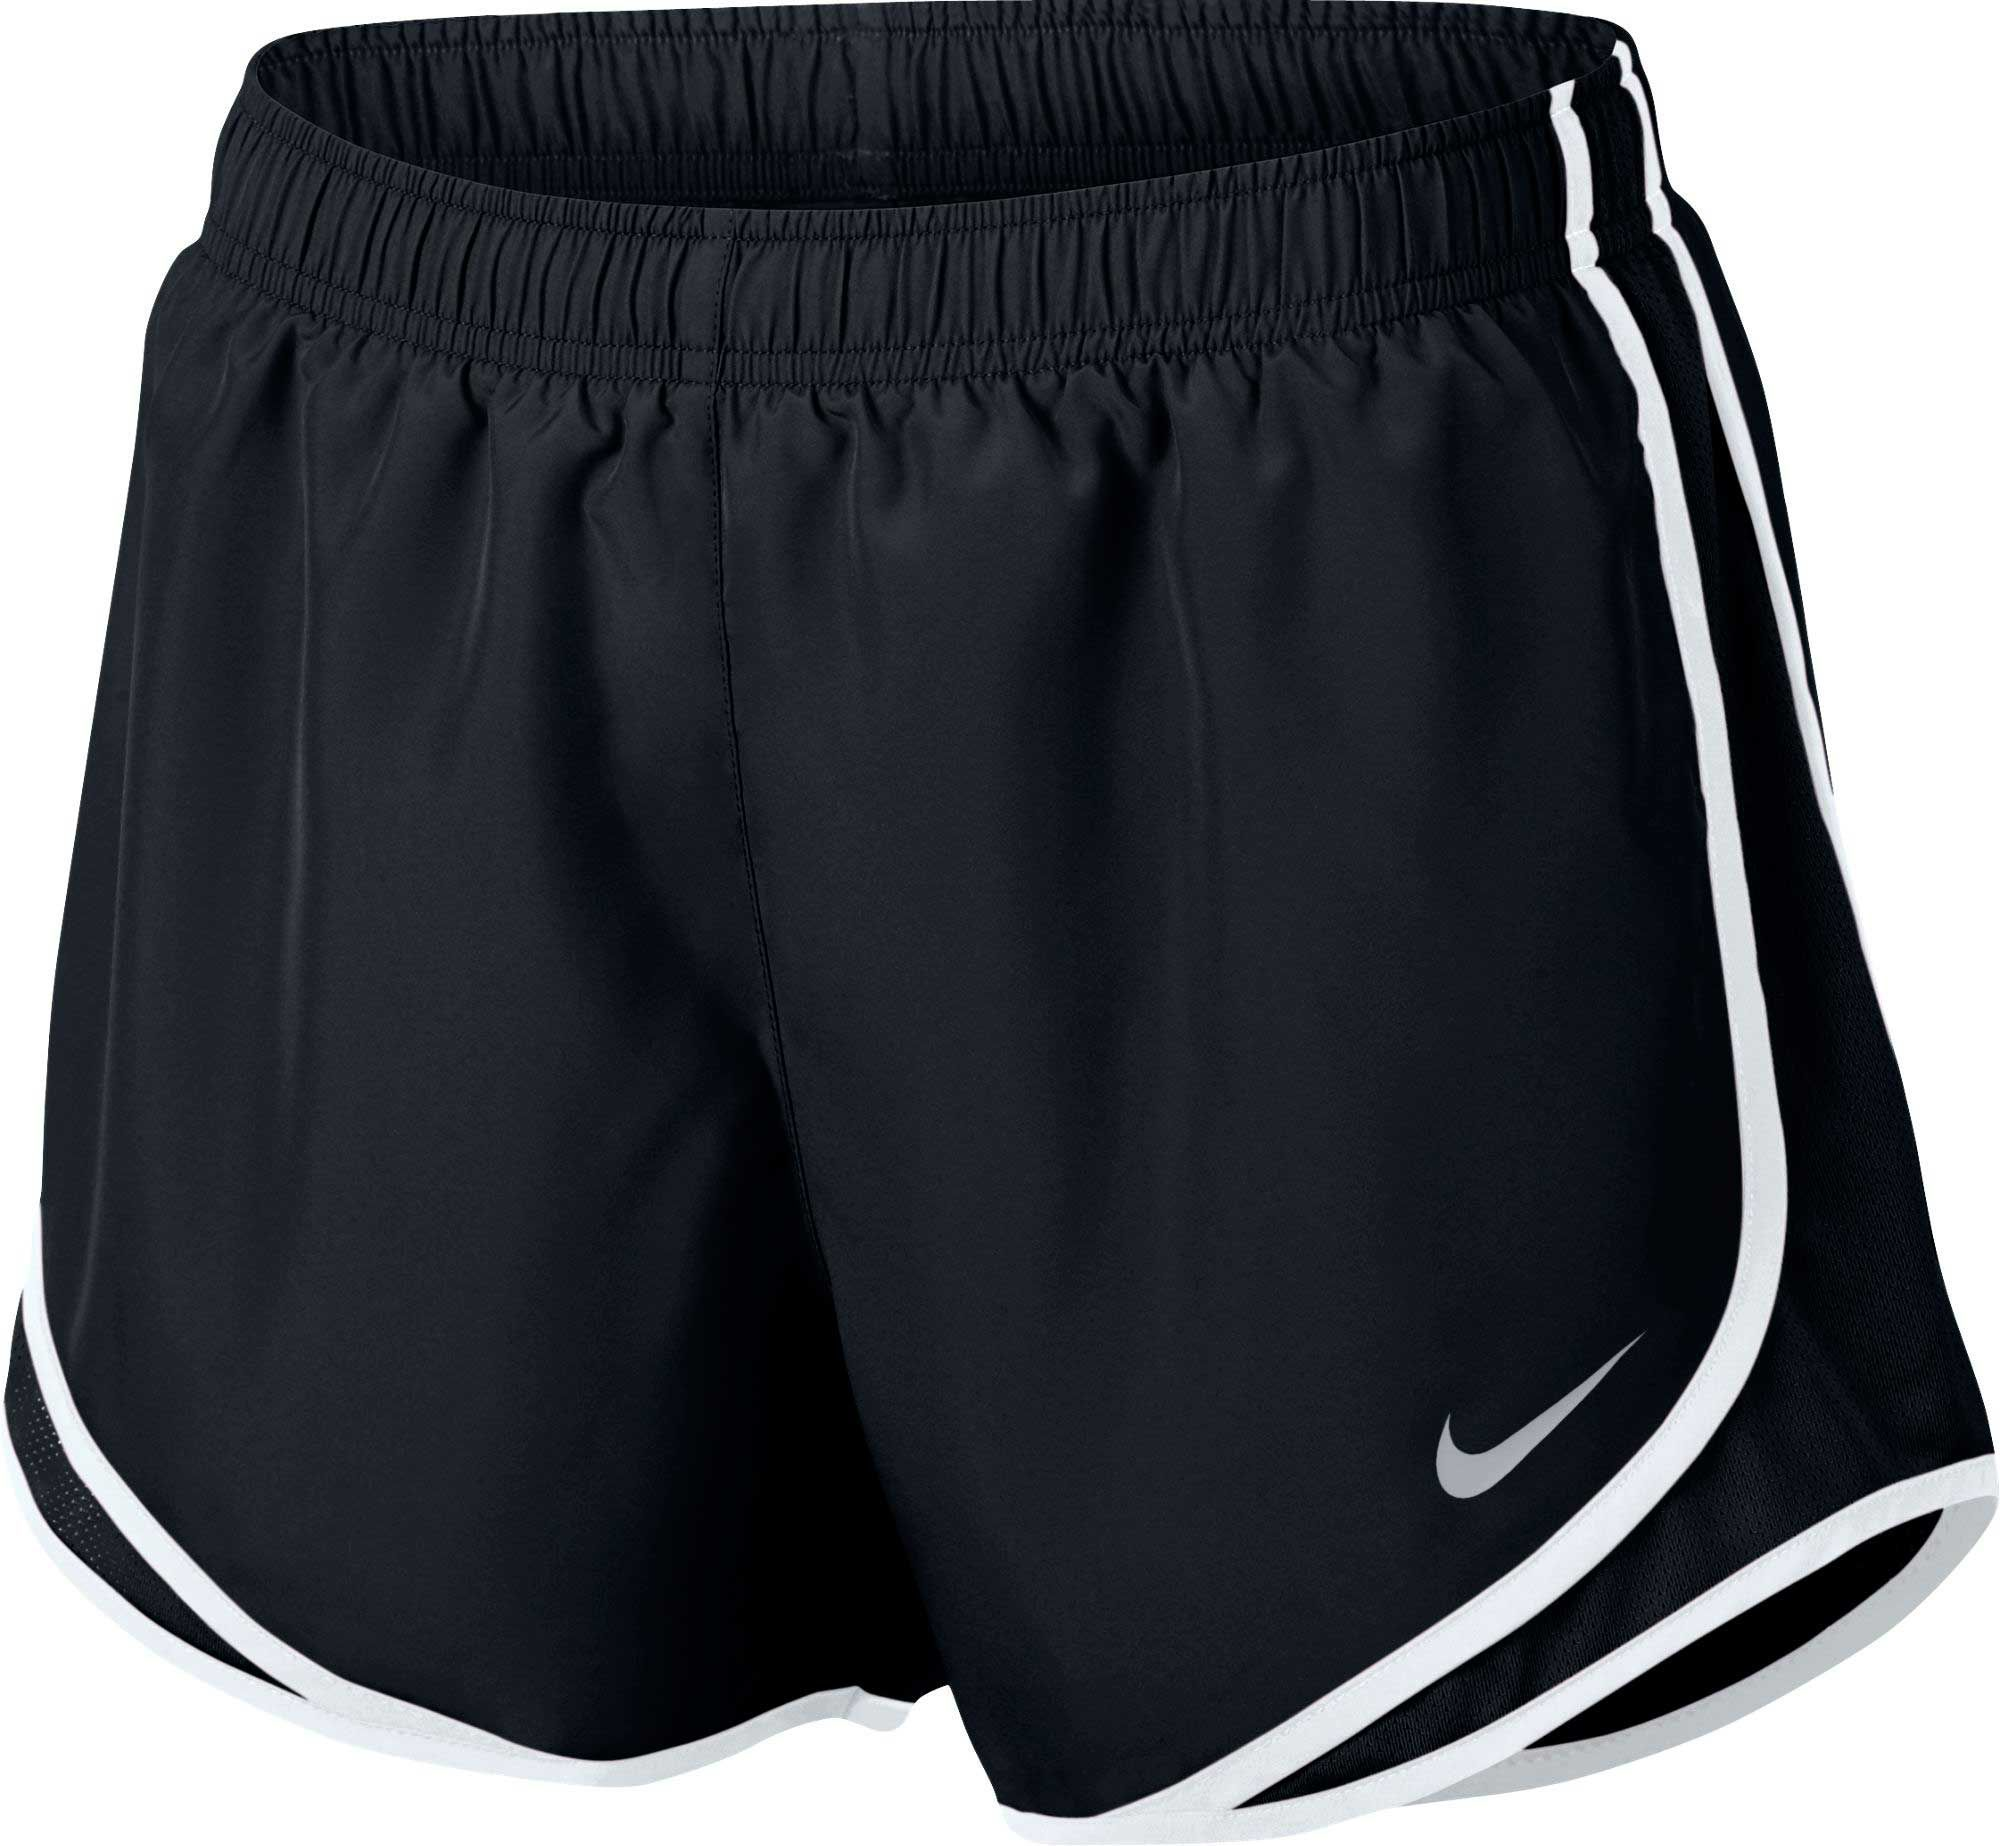 quality design 75419 5fdcd Nike Women s 3   Dry Tempo Core Running Shorts, Size  Large, Black